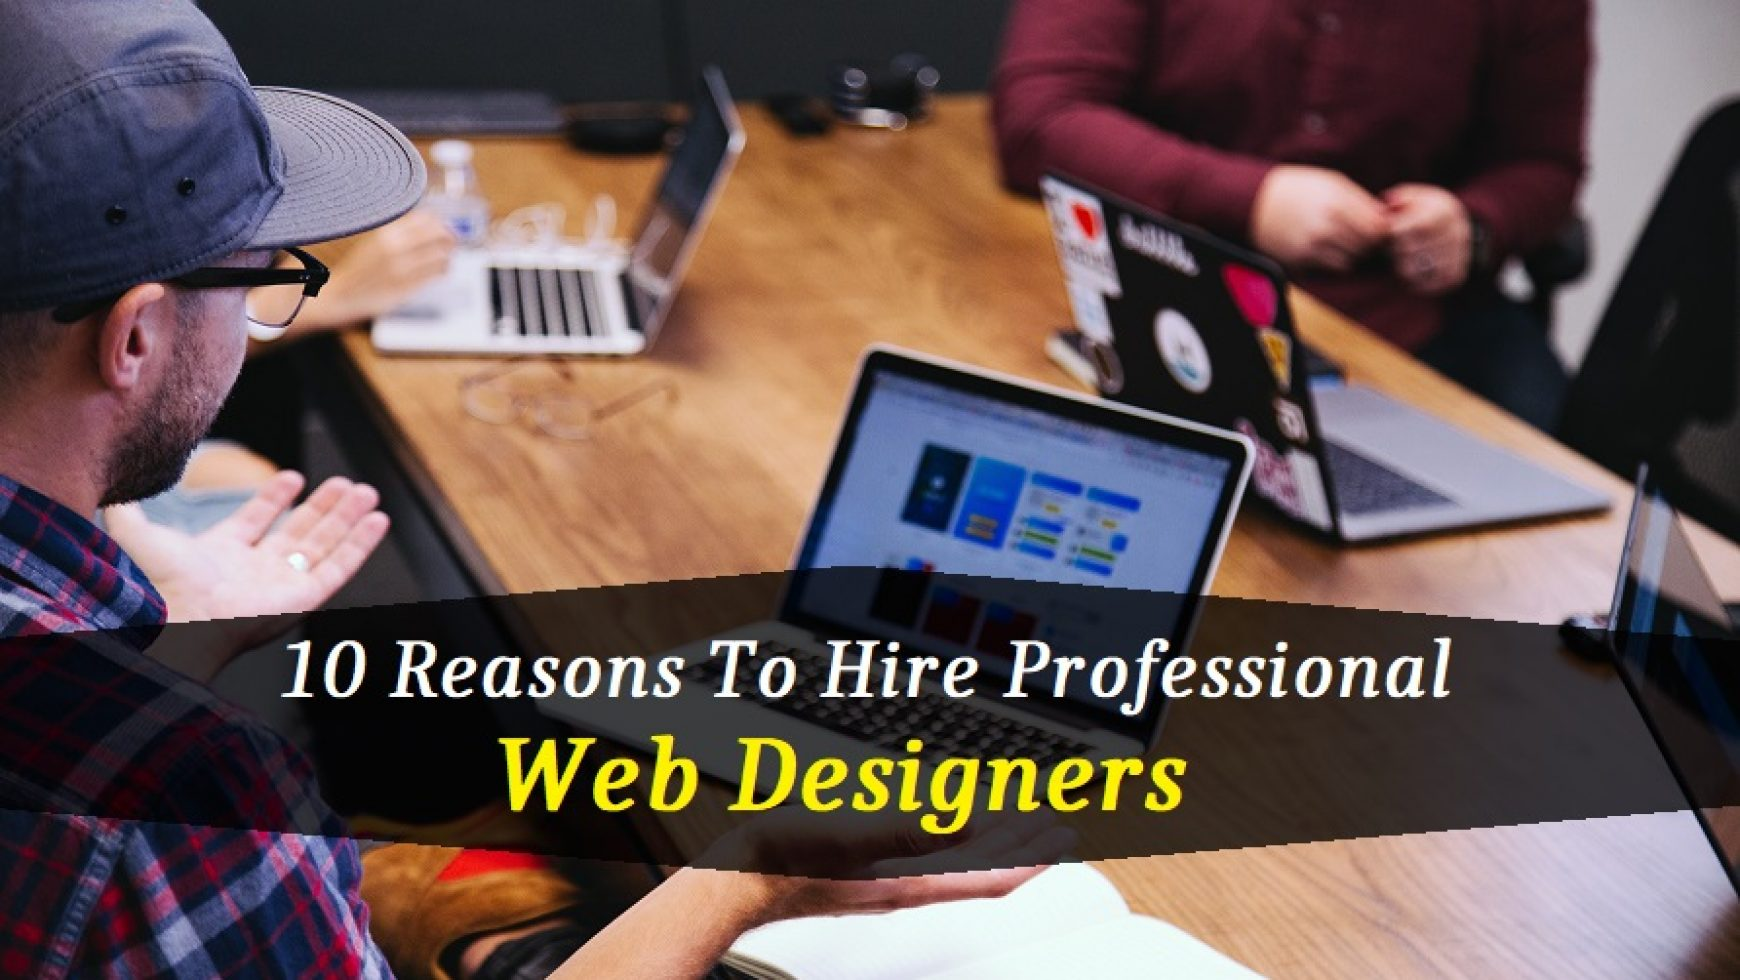 10 Reasons To Hire Professional Web Designers